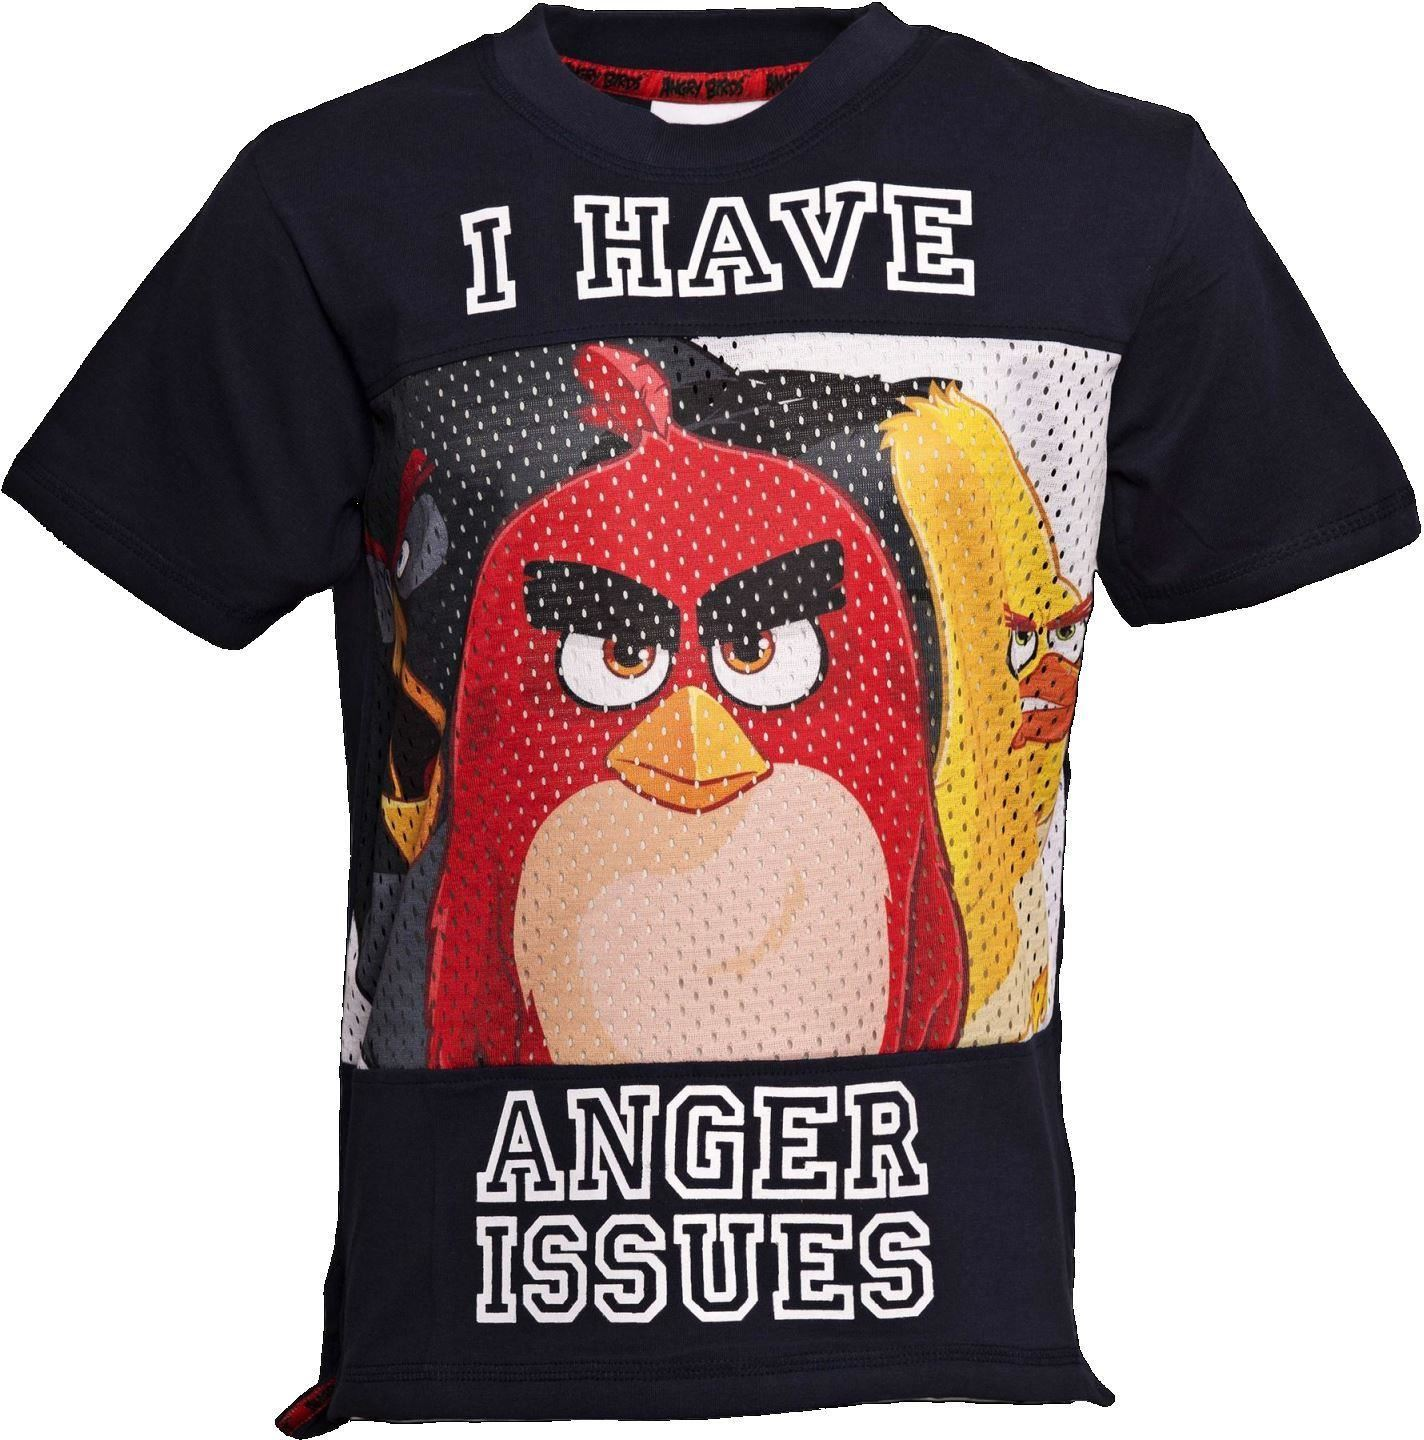 Anger Issues Angry Birds Baseball Style T Shirt Age 5 6